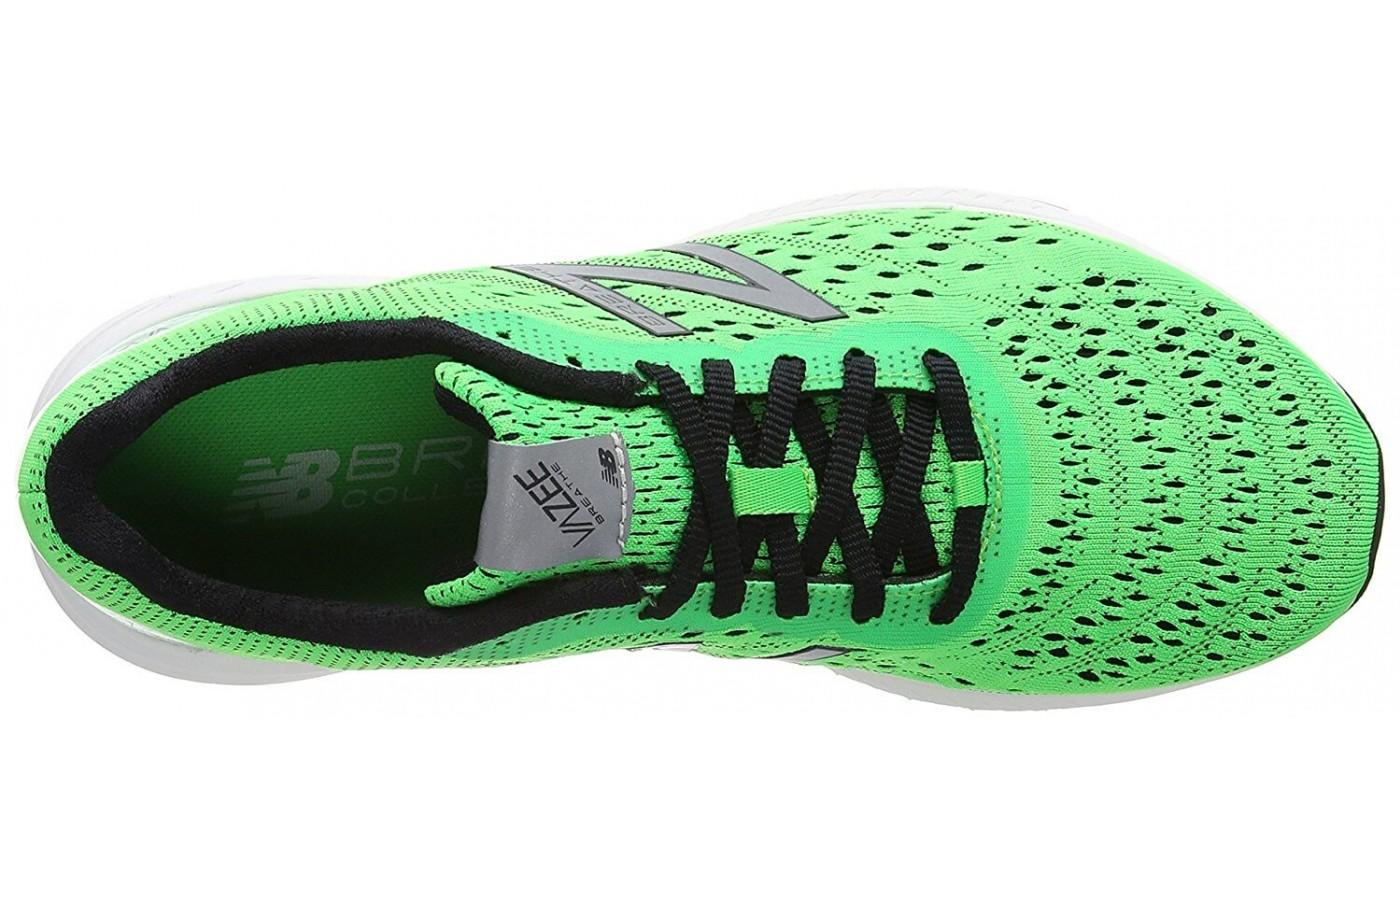 The lacing system provides a secure fit but it also provides a flexible feel.